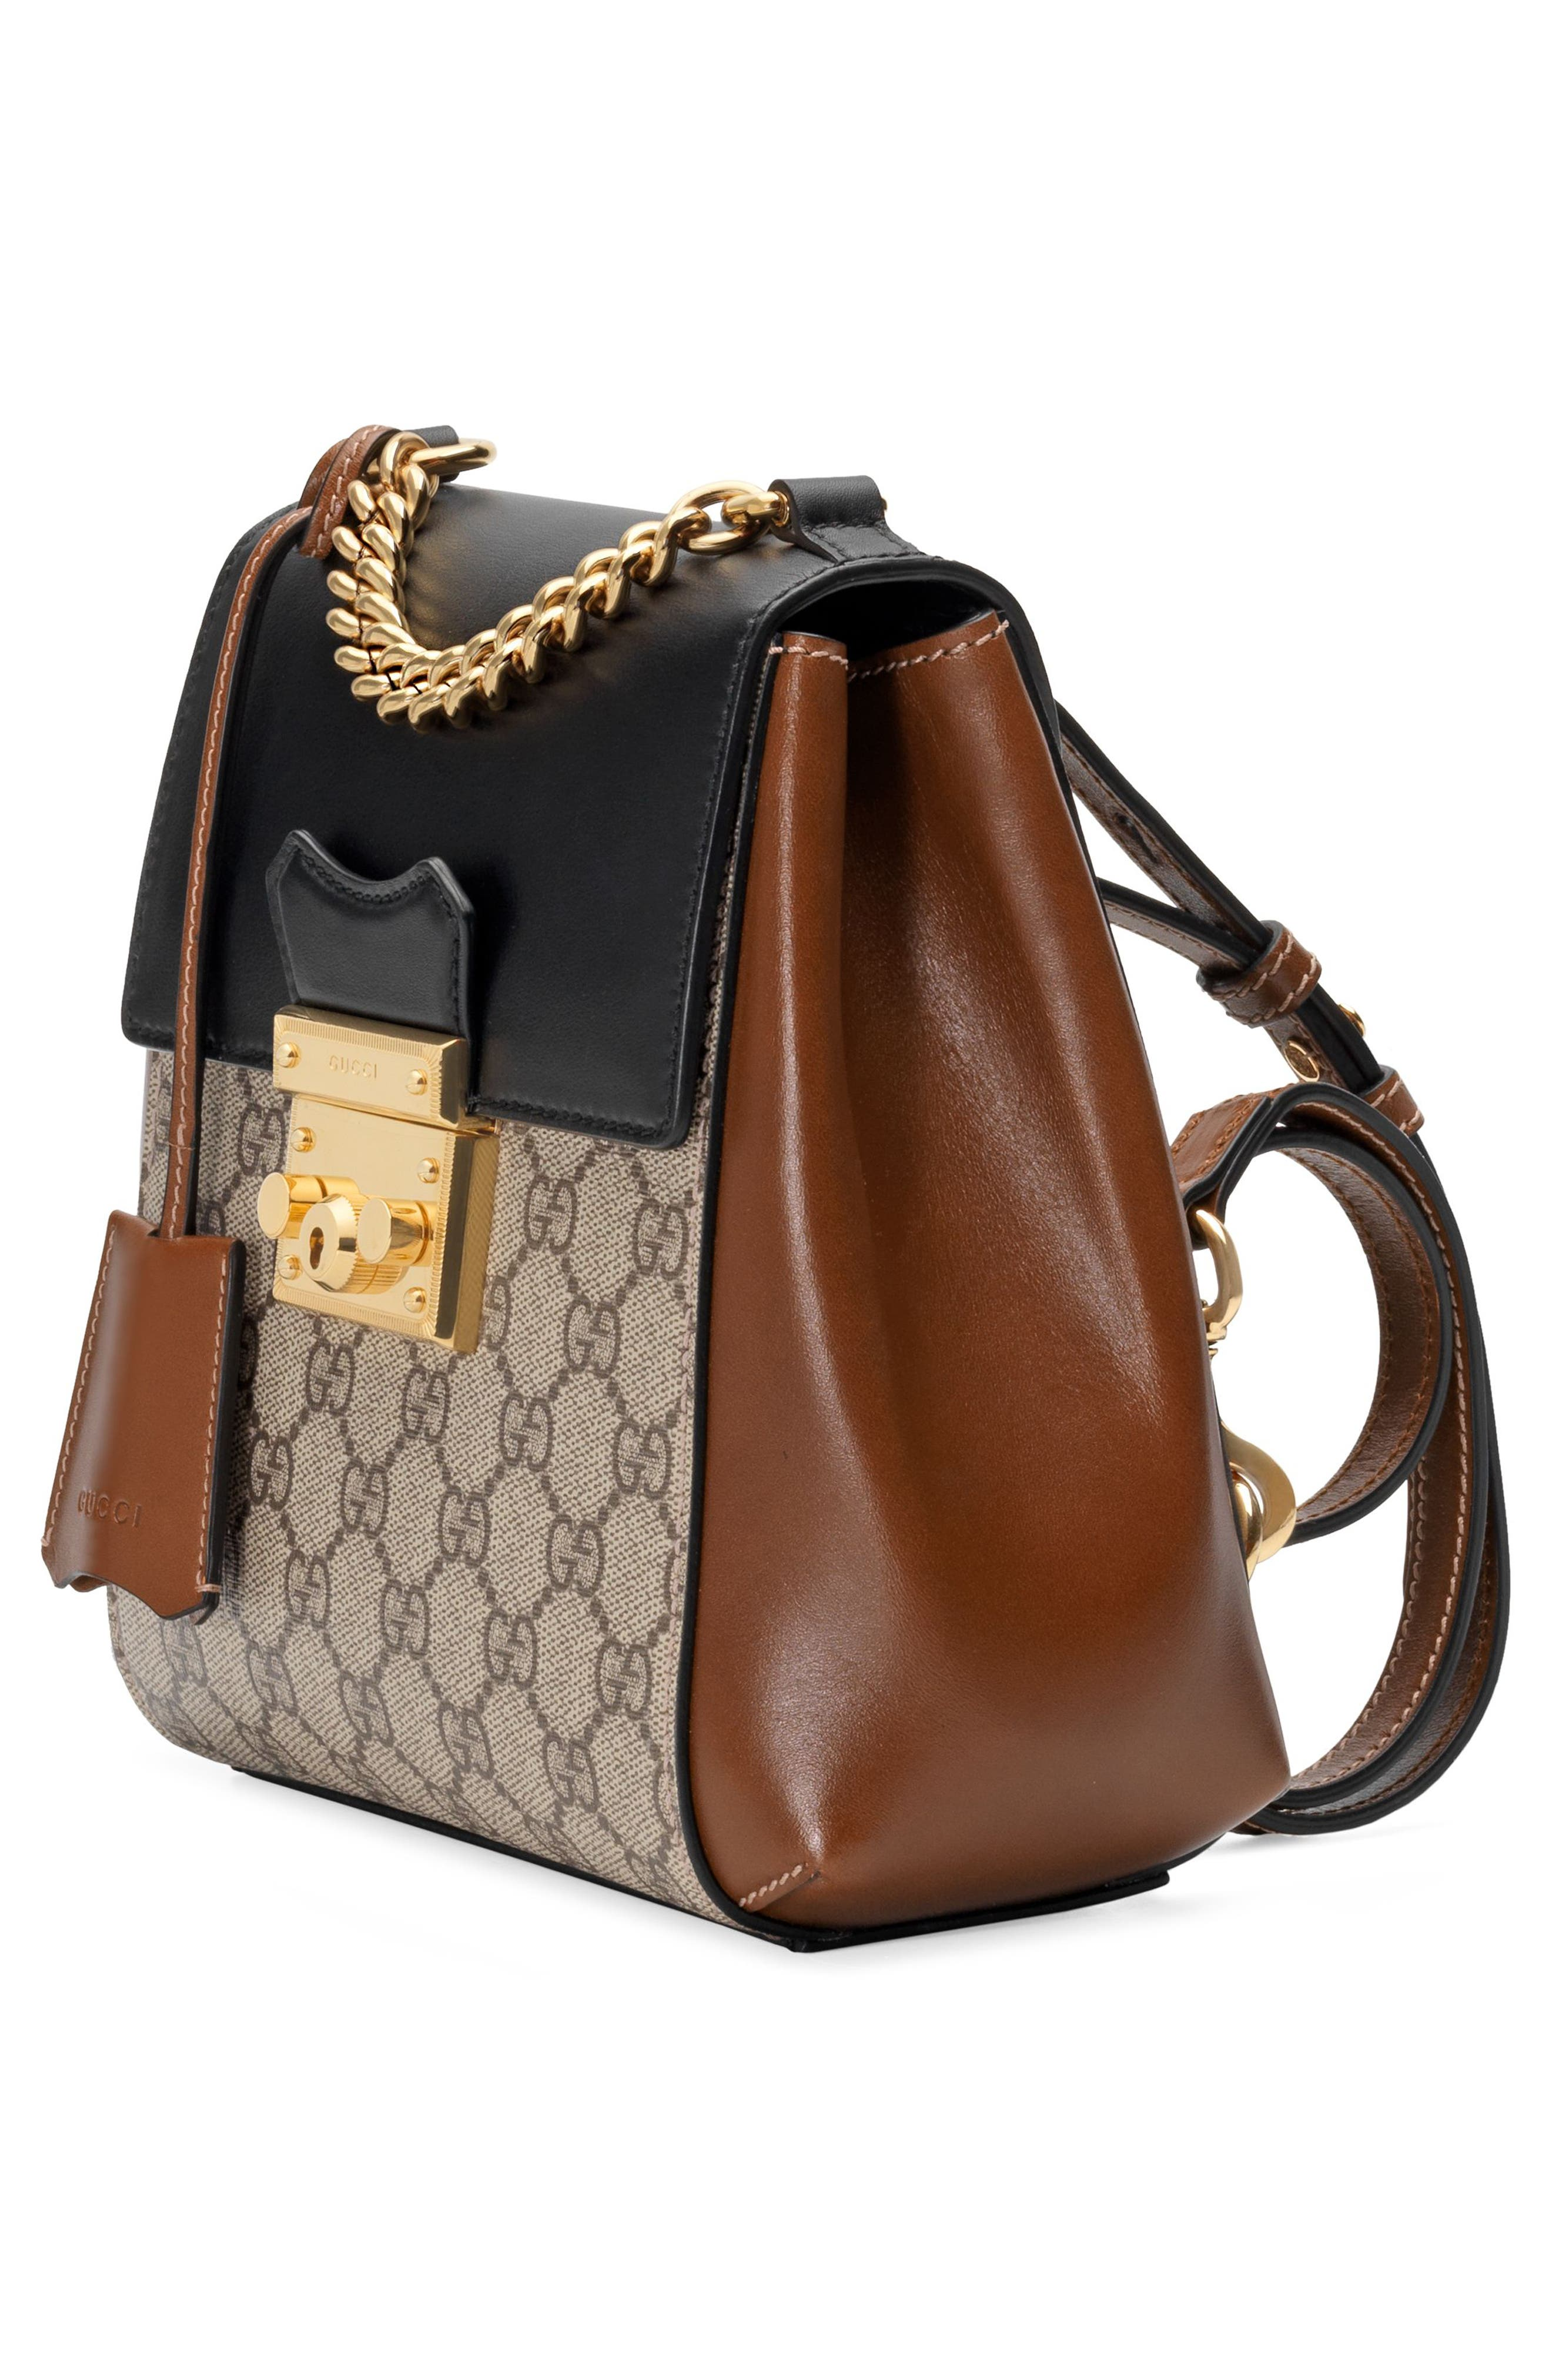 GG Supreme Canvas & Leather Padlock Backpack,                             Alternate thumbnail 4, color,                             Beige Ebony/ Nero/ Cuir